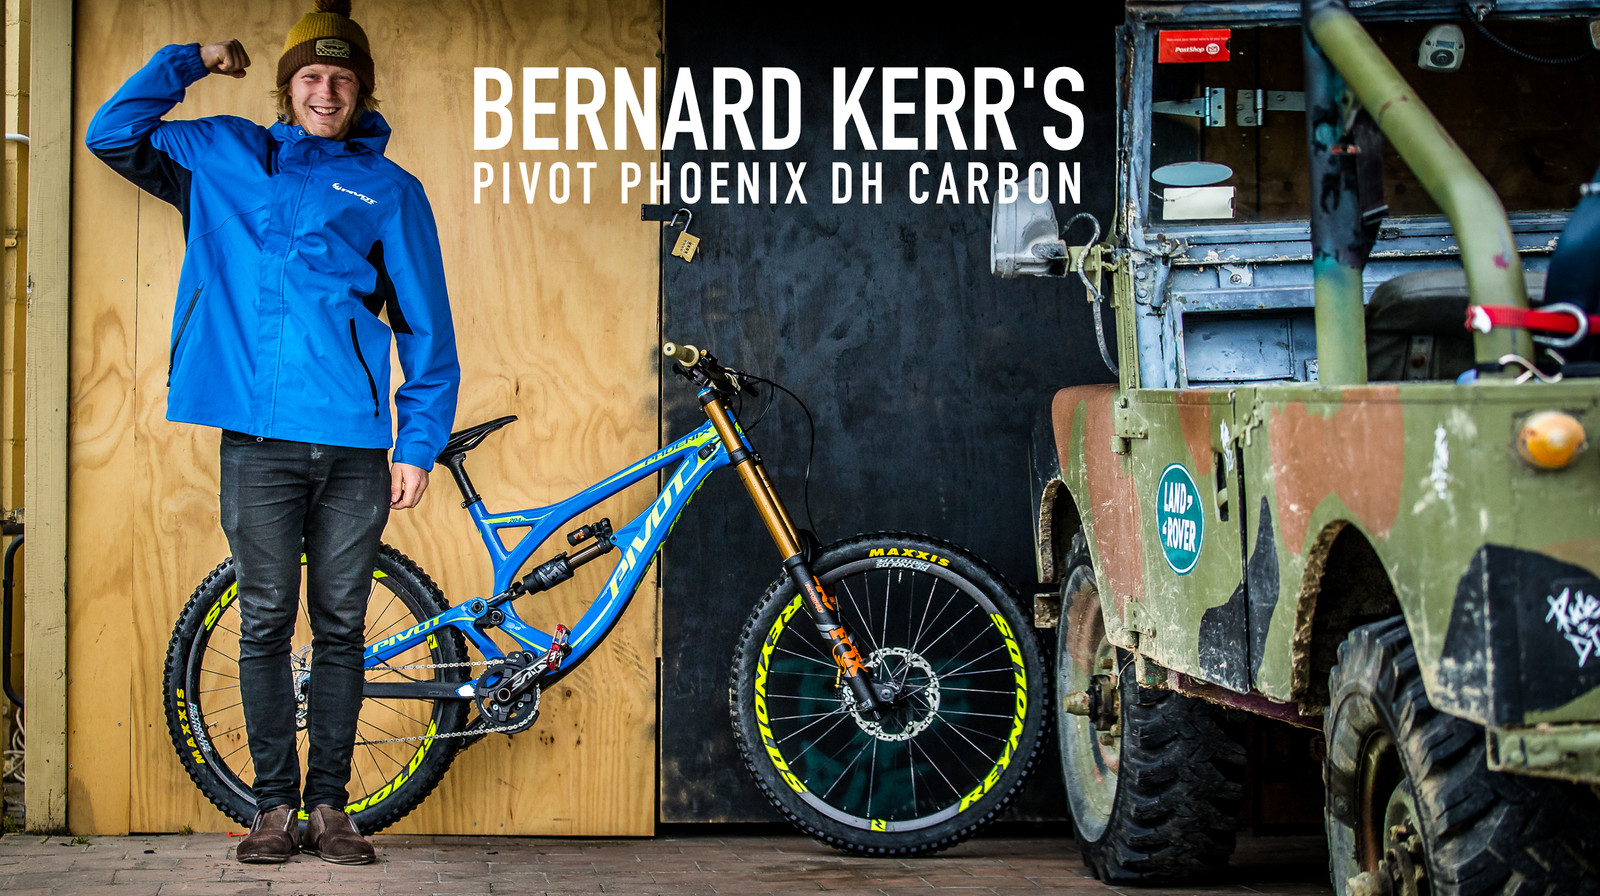 Bernard kerr 39 s pivot phoenix dh carbon mountain bikes for Bernard pineix